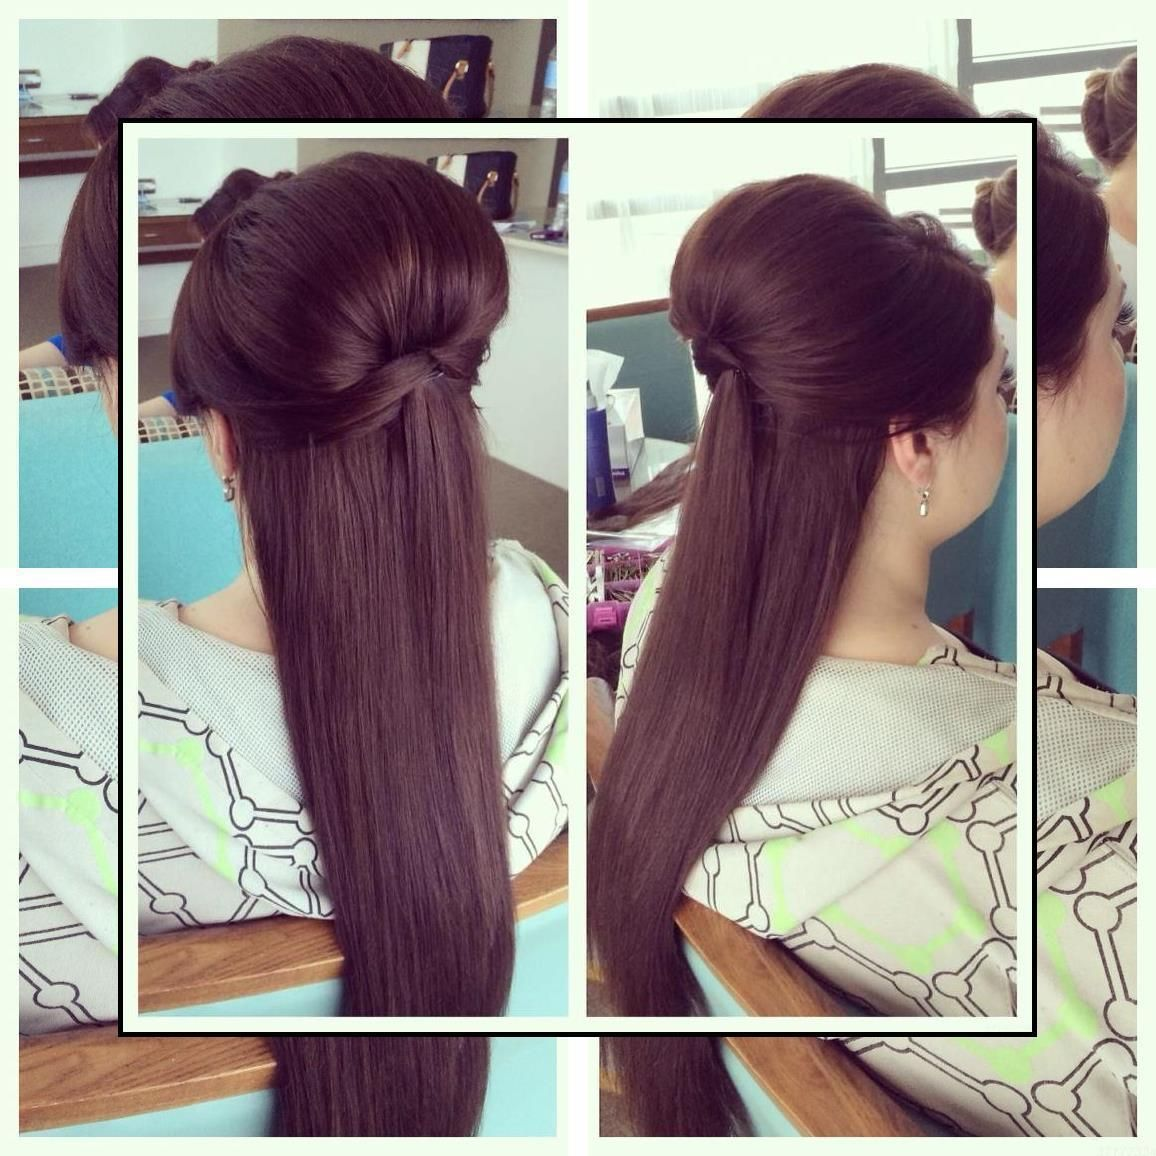 Hairstyles For Long Hair How To Make Hair Soft And Straight Open Hair Hairstyles For Straigh Straight Hairstyles Sleek Straight Hairstyles Sleek Hairstyles